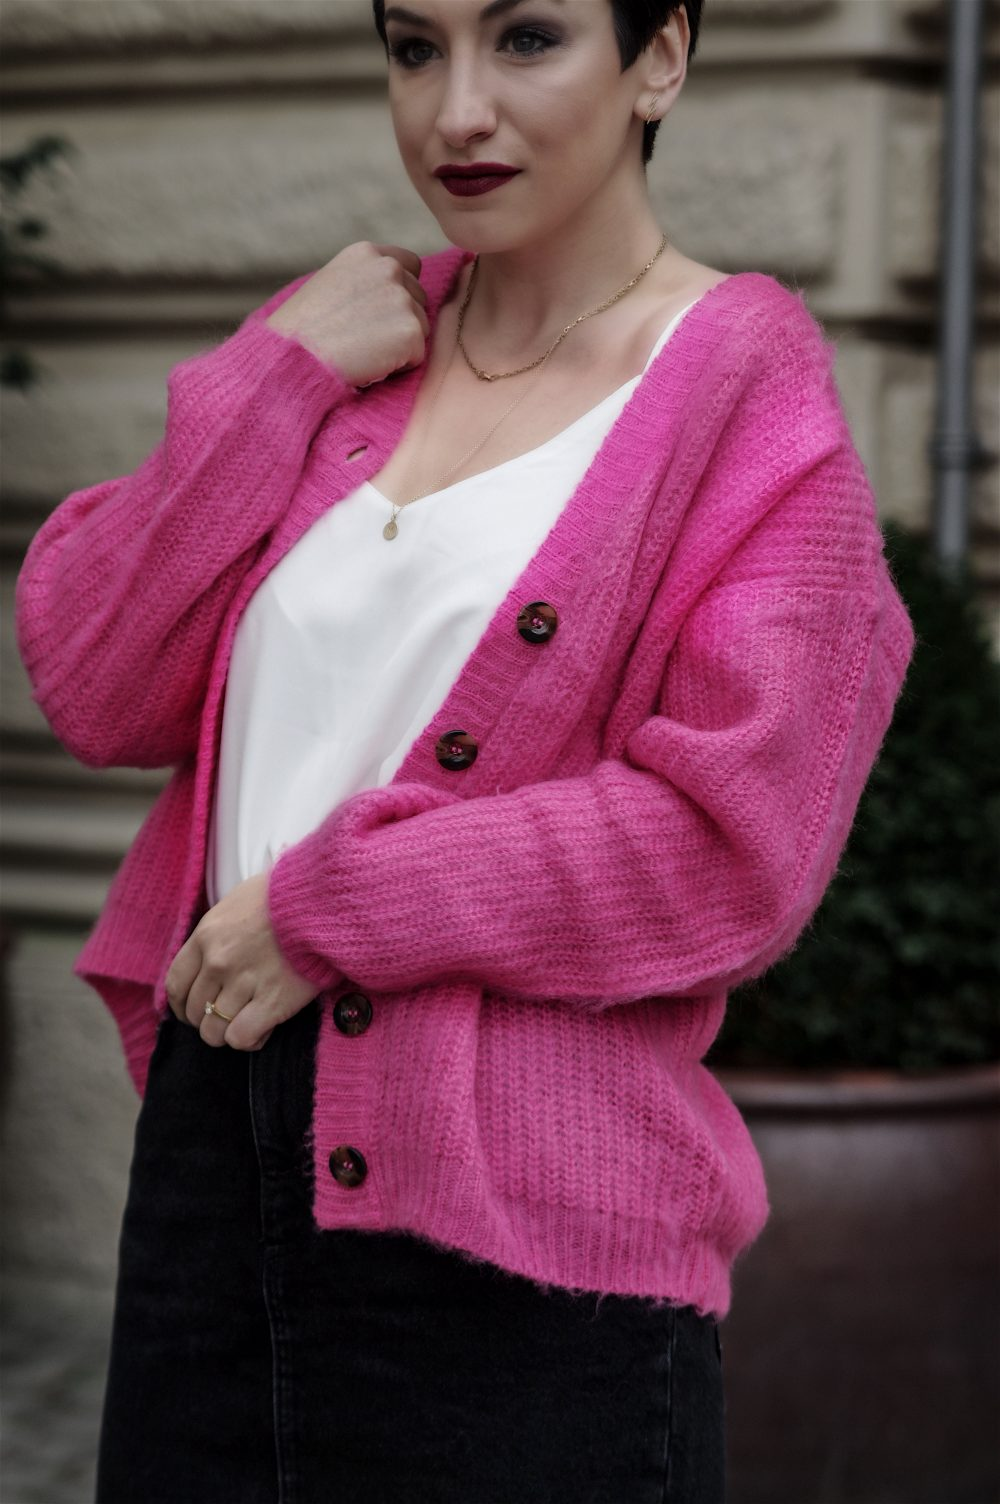 spring outfit,pink cardigan, sweater weather, white top, beauty, spring fashion 2018- MihaBalan.com